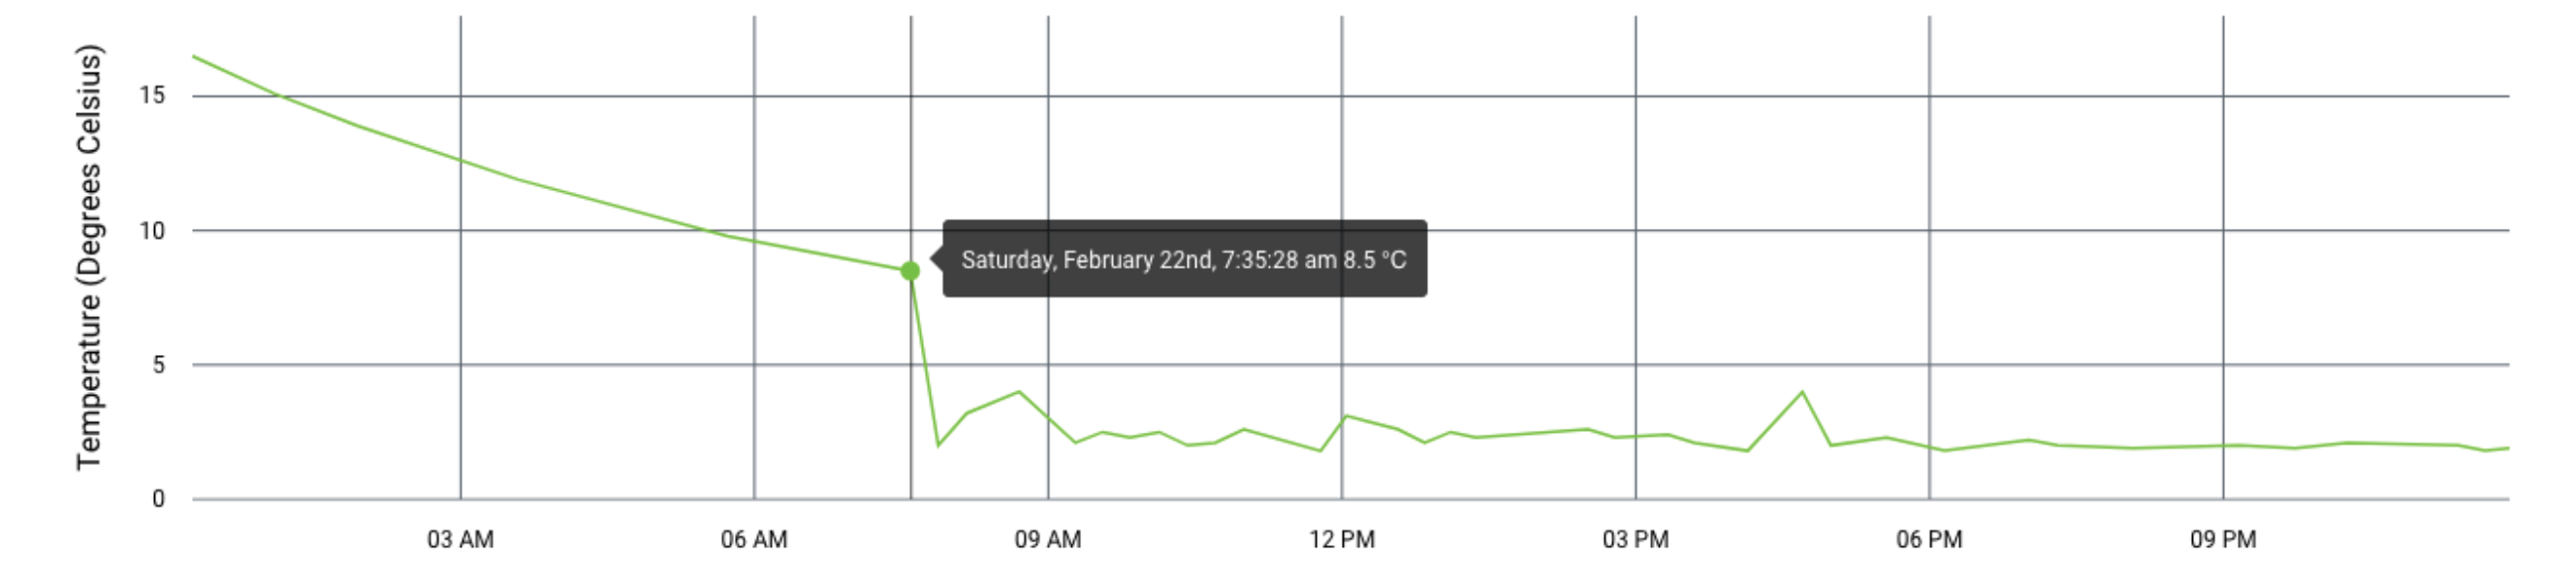 Temperature at 07:35 AM was at 8.5 degrees Celsius.